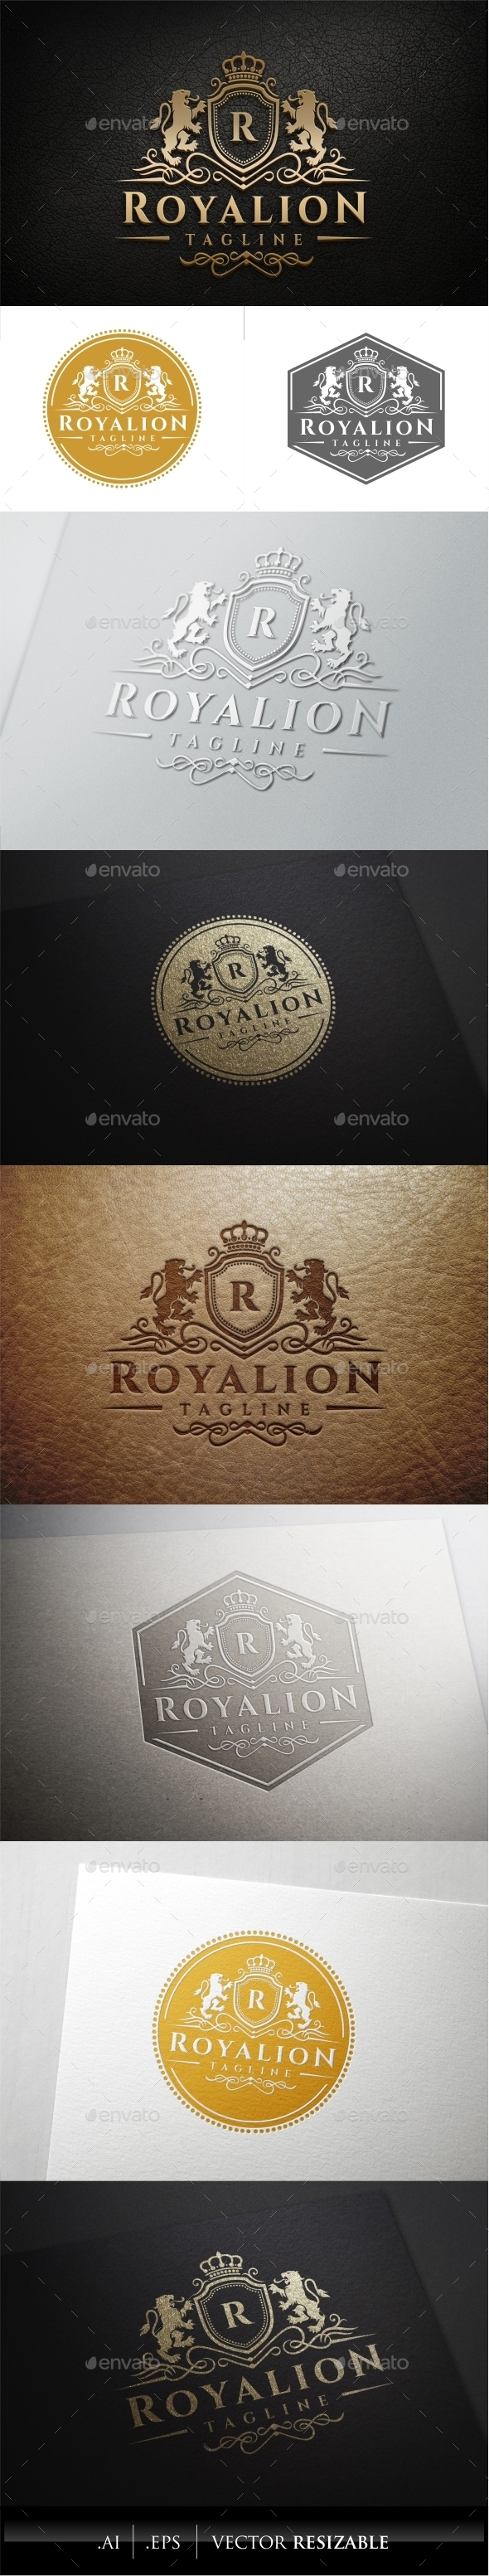 GraphicRiver Royal Lion Logo Template 11474876